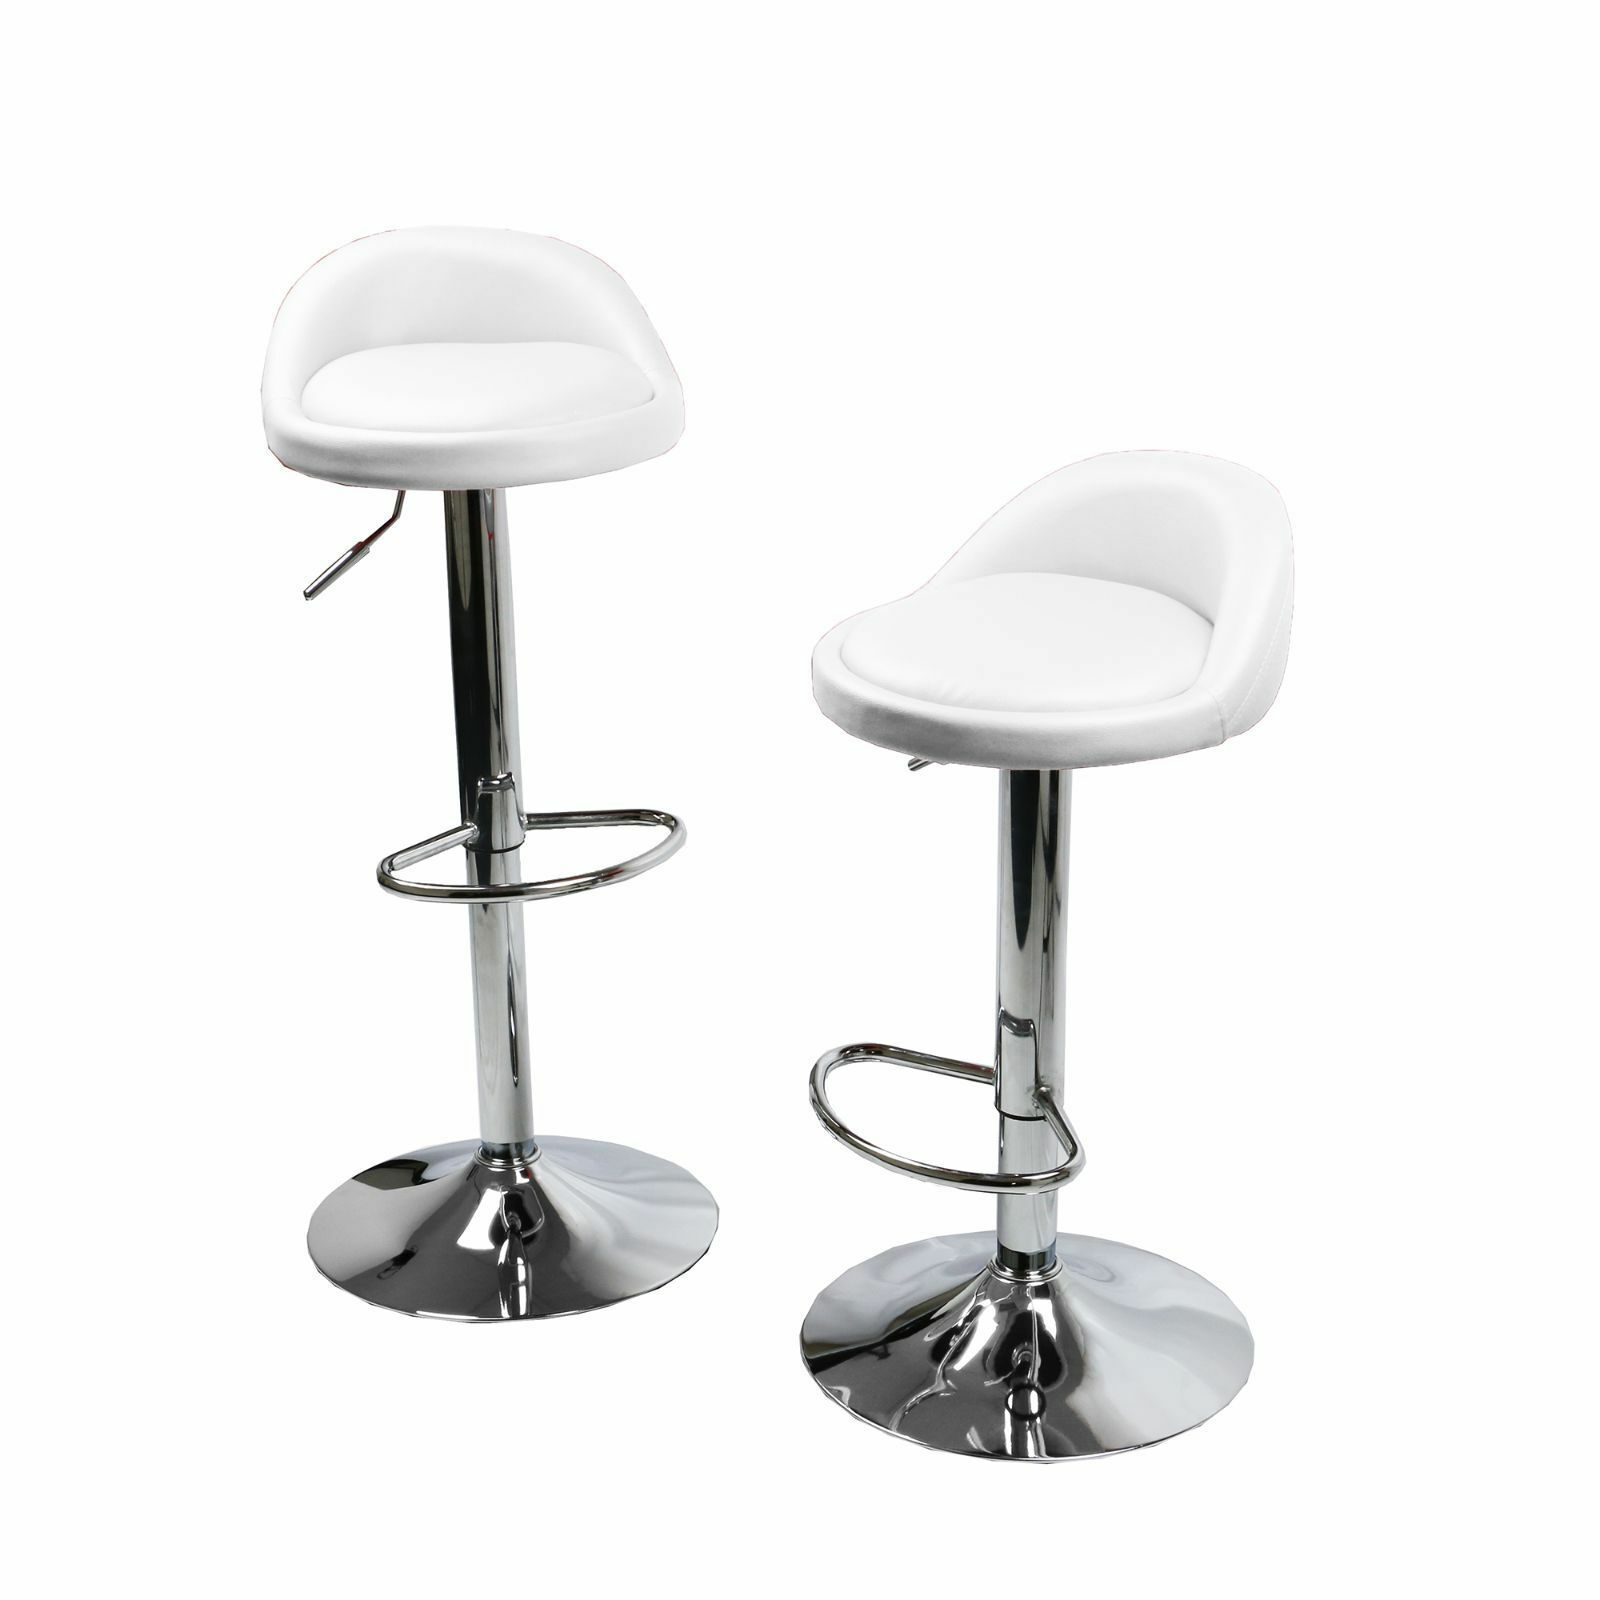 White Counter Height Chairs Set Of 2 White Leather Bar Stools Swivel Dinning Counter